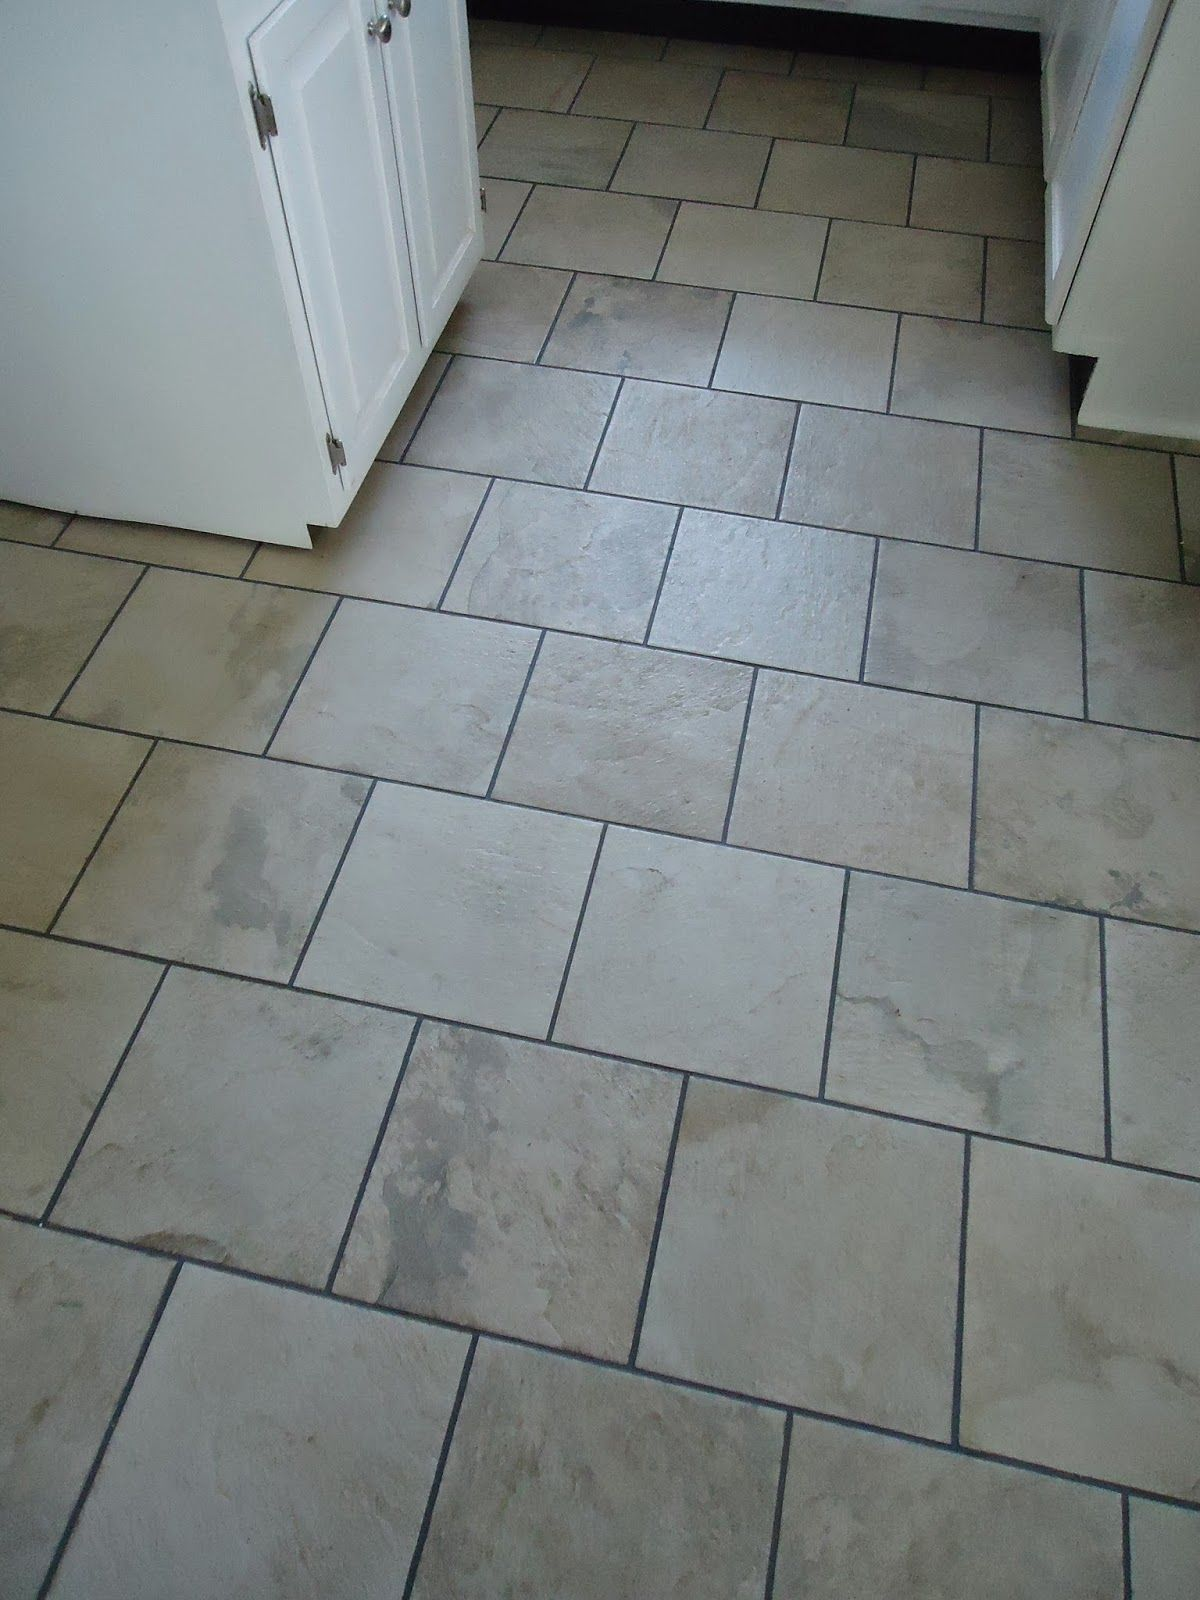 How to change the color of your tile grout without removing the ...